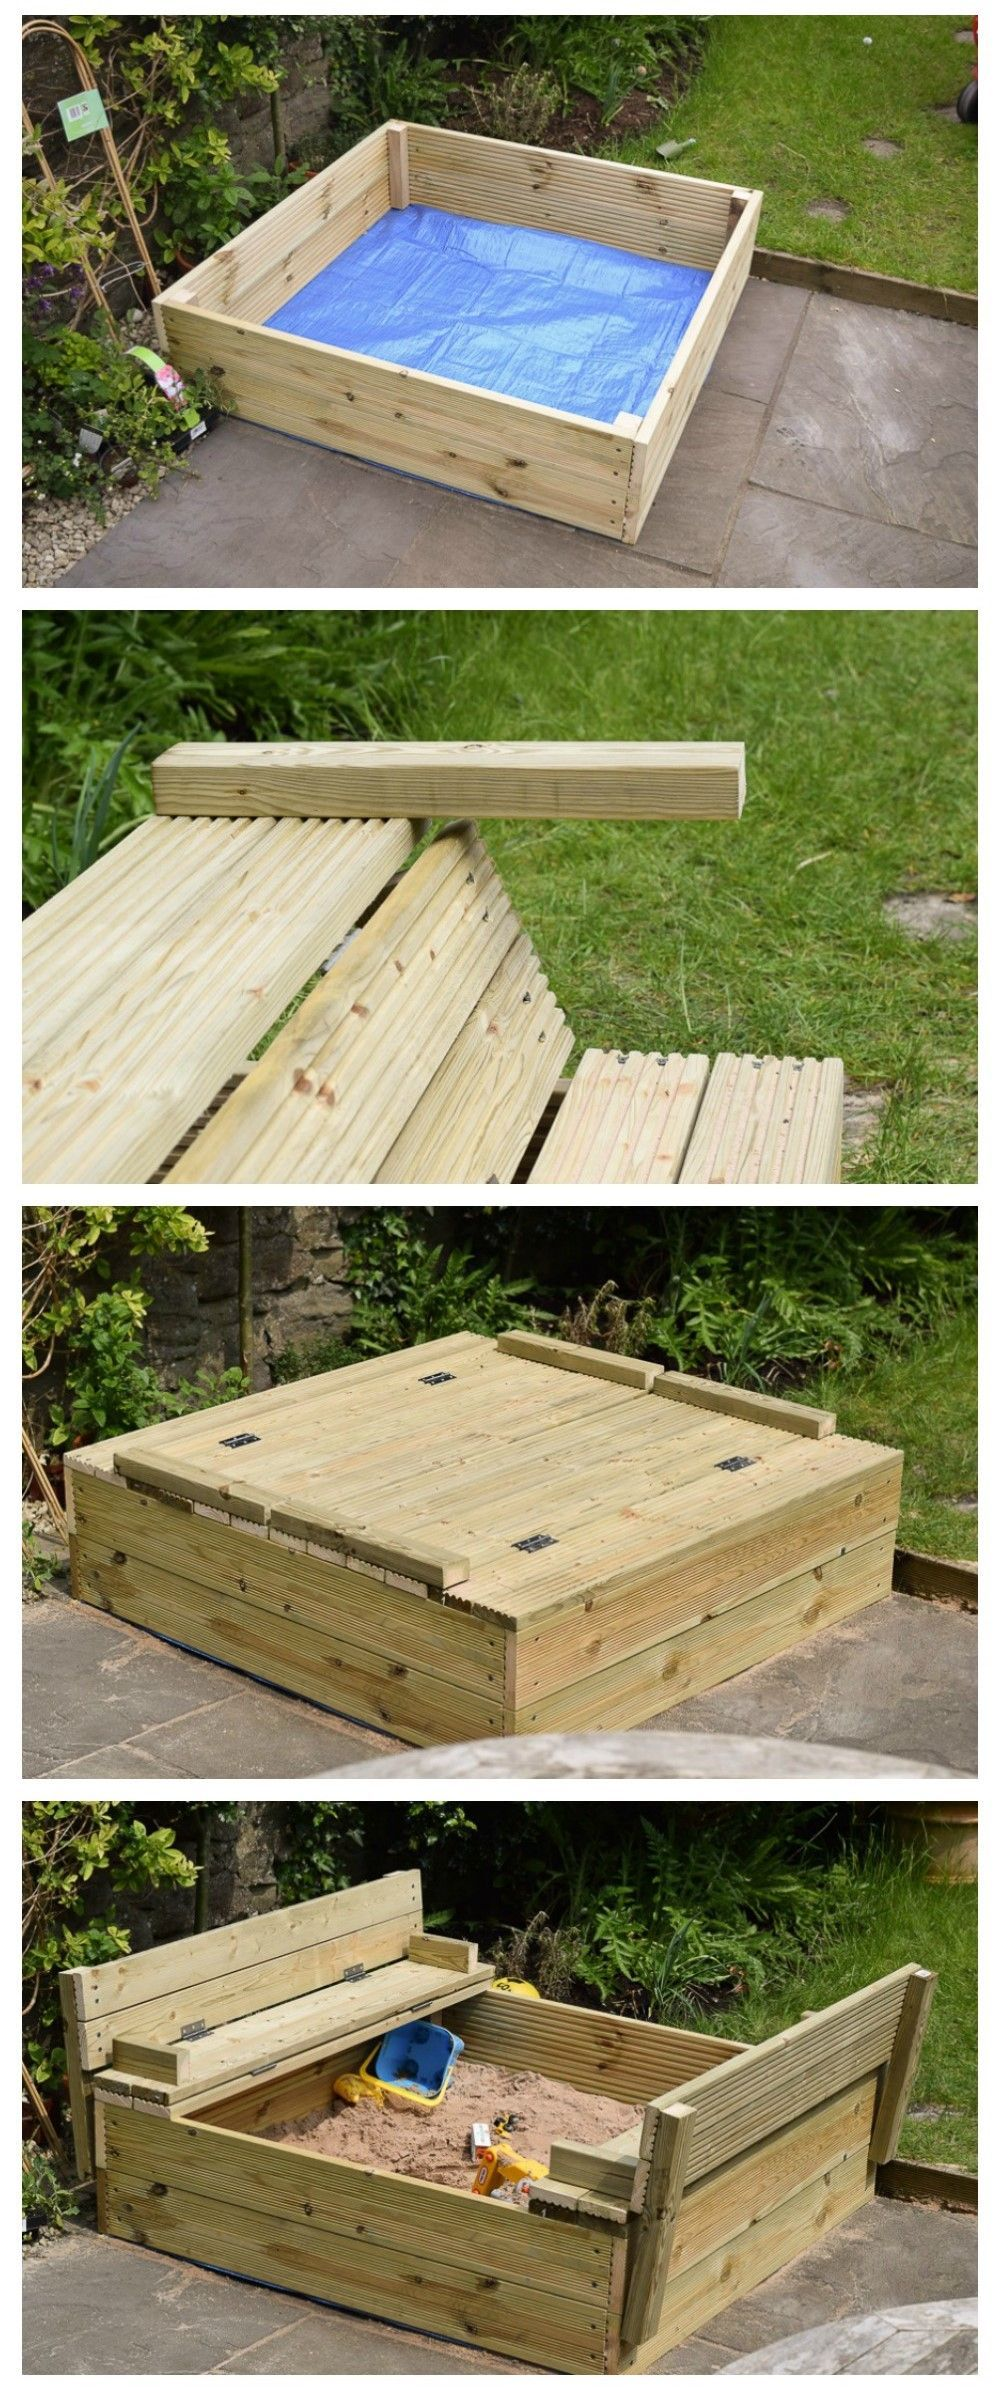 Easy DIY Wooden Sandpit With Fold Out Benches Made Decking Boards And A Sheet Of Tarpaulin